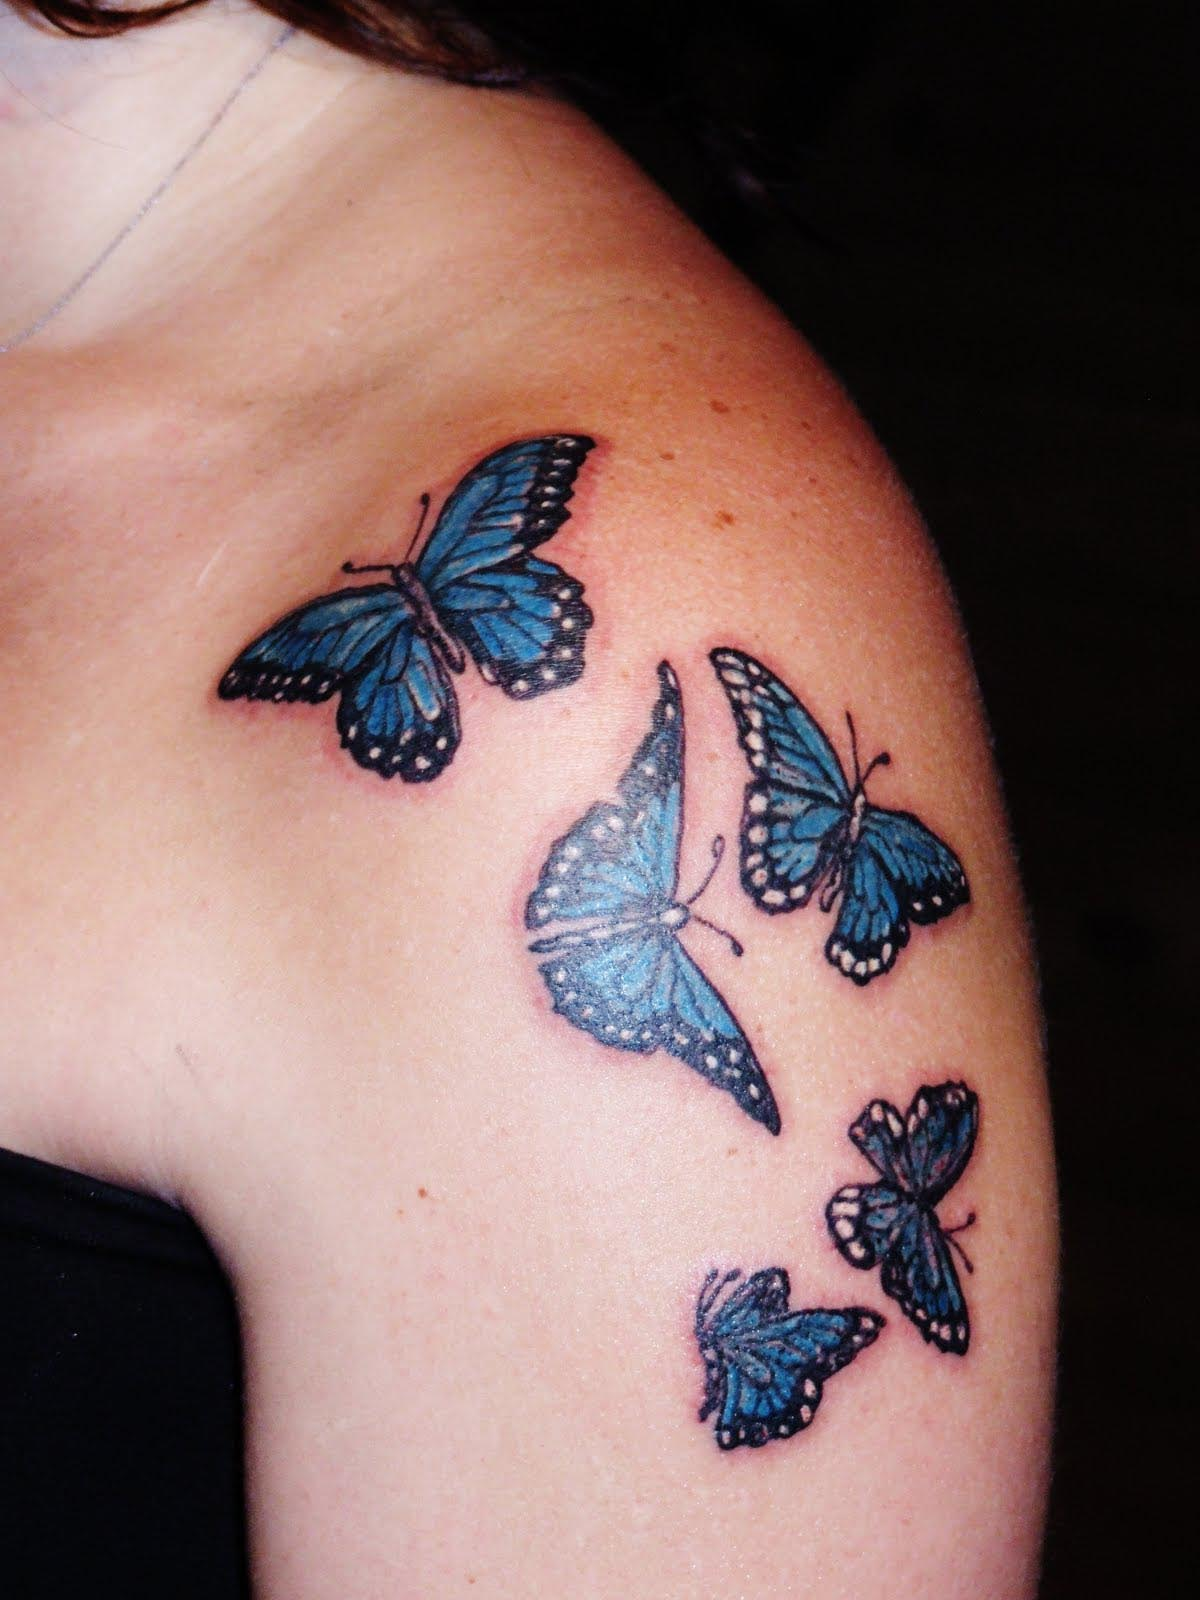 butterfly tattoos3d tattoos. Black Bedroom Furniture Sets. Home Design Ideas